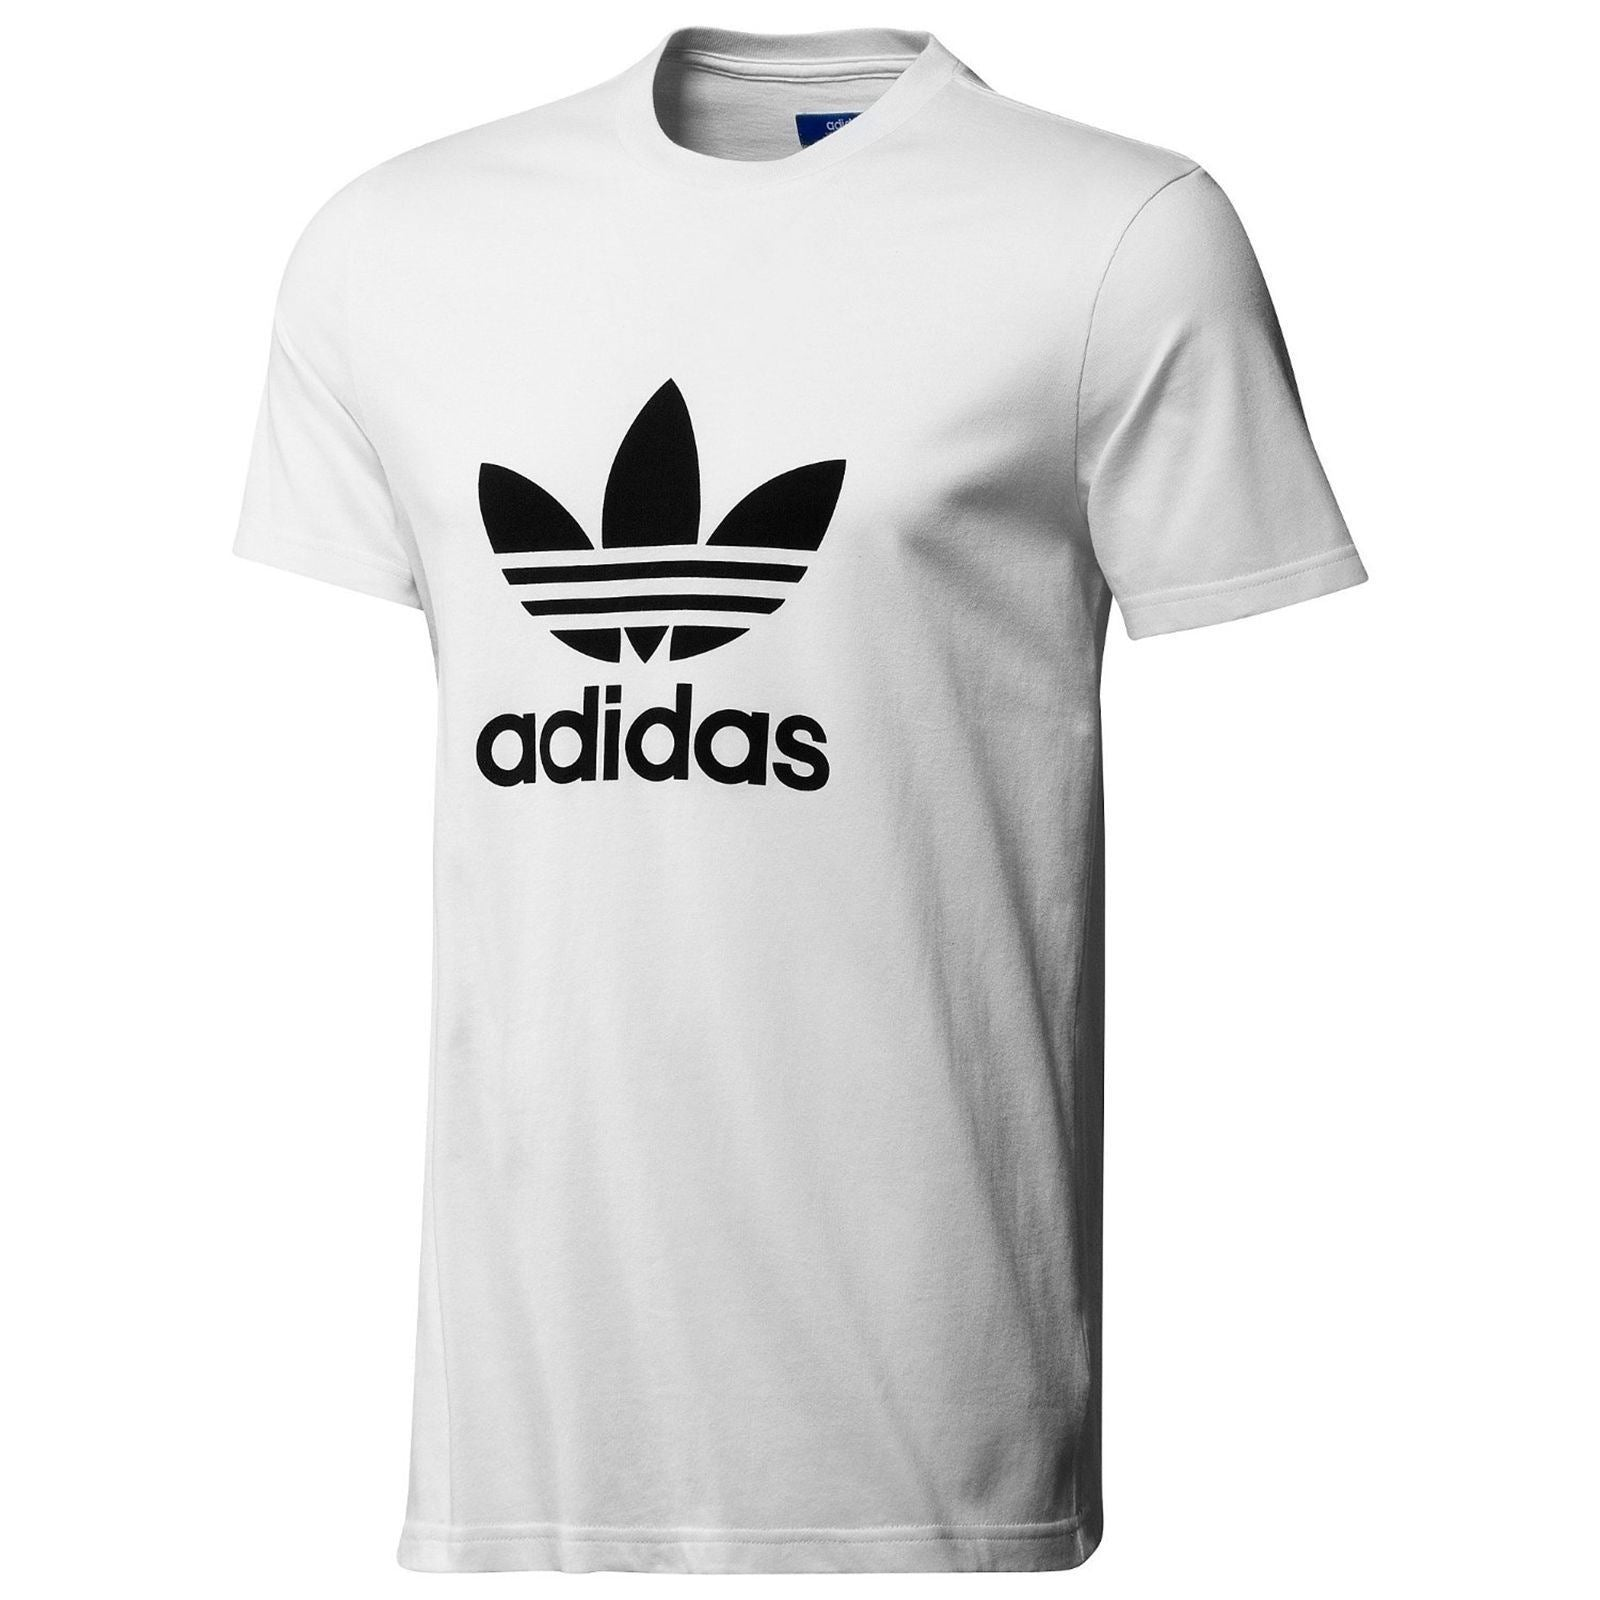 Adidas Originals Trefoil Tee Crew Neck Cotton Casual T-Shirt All Size S M L XL WHITE